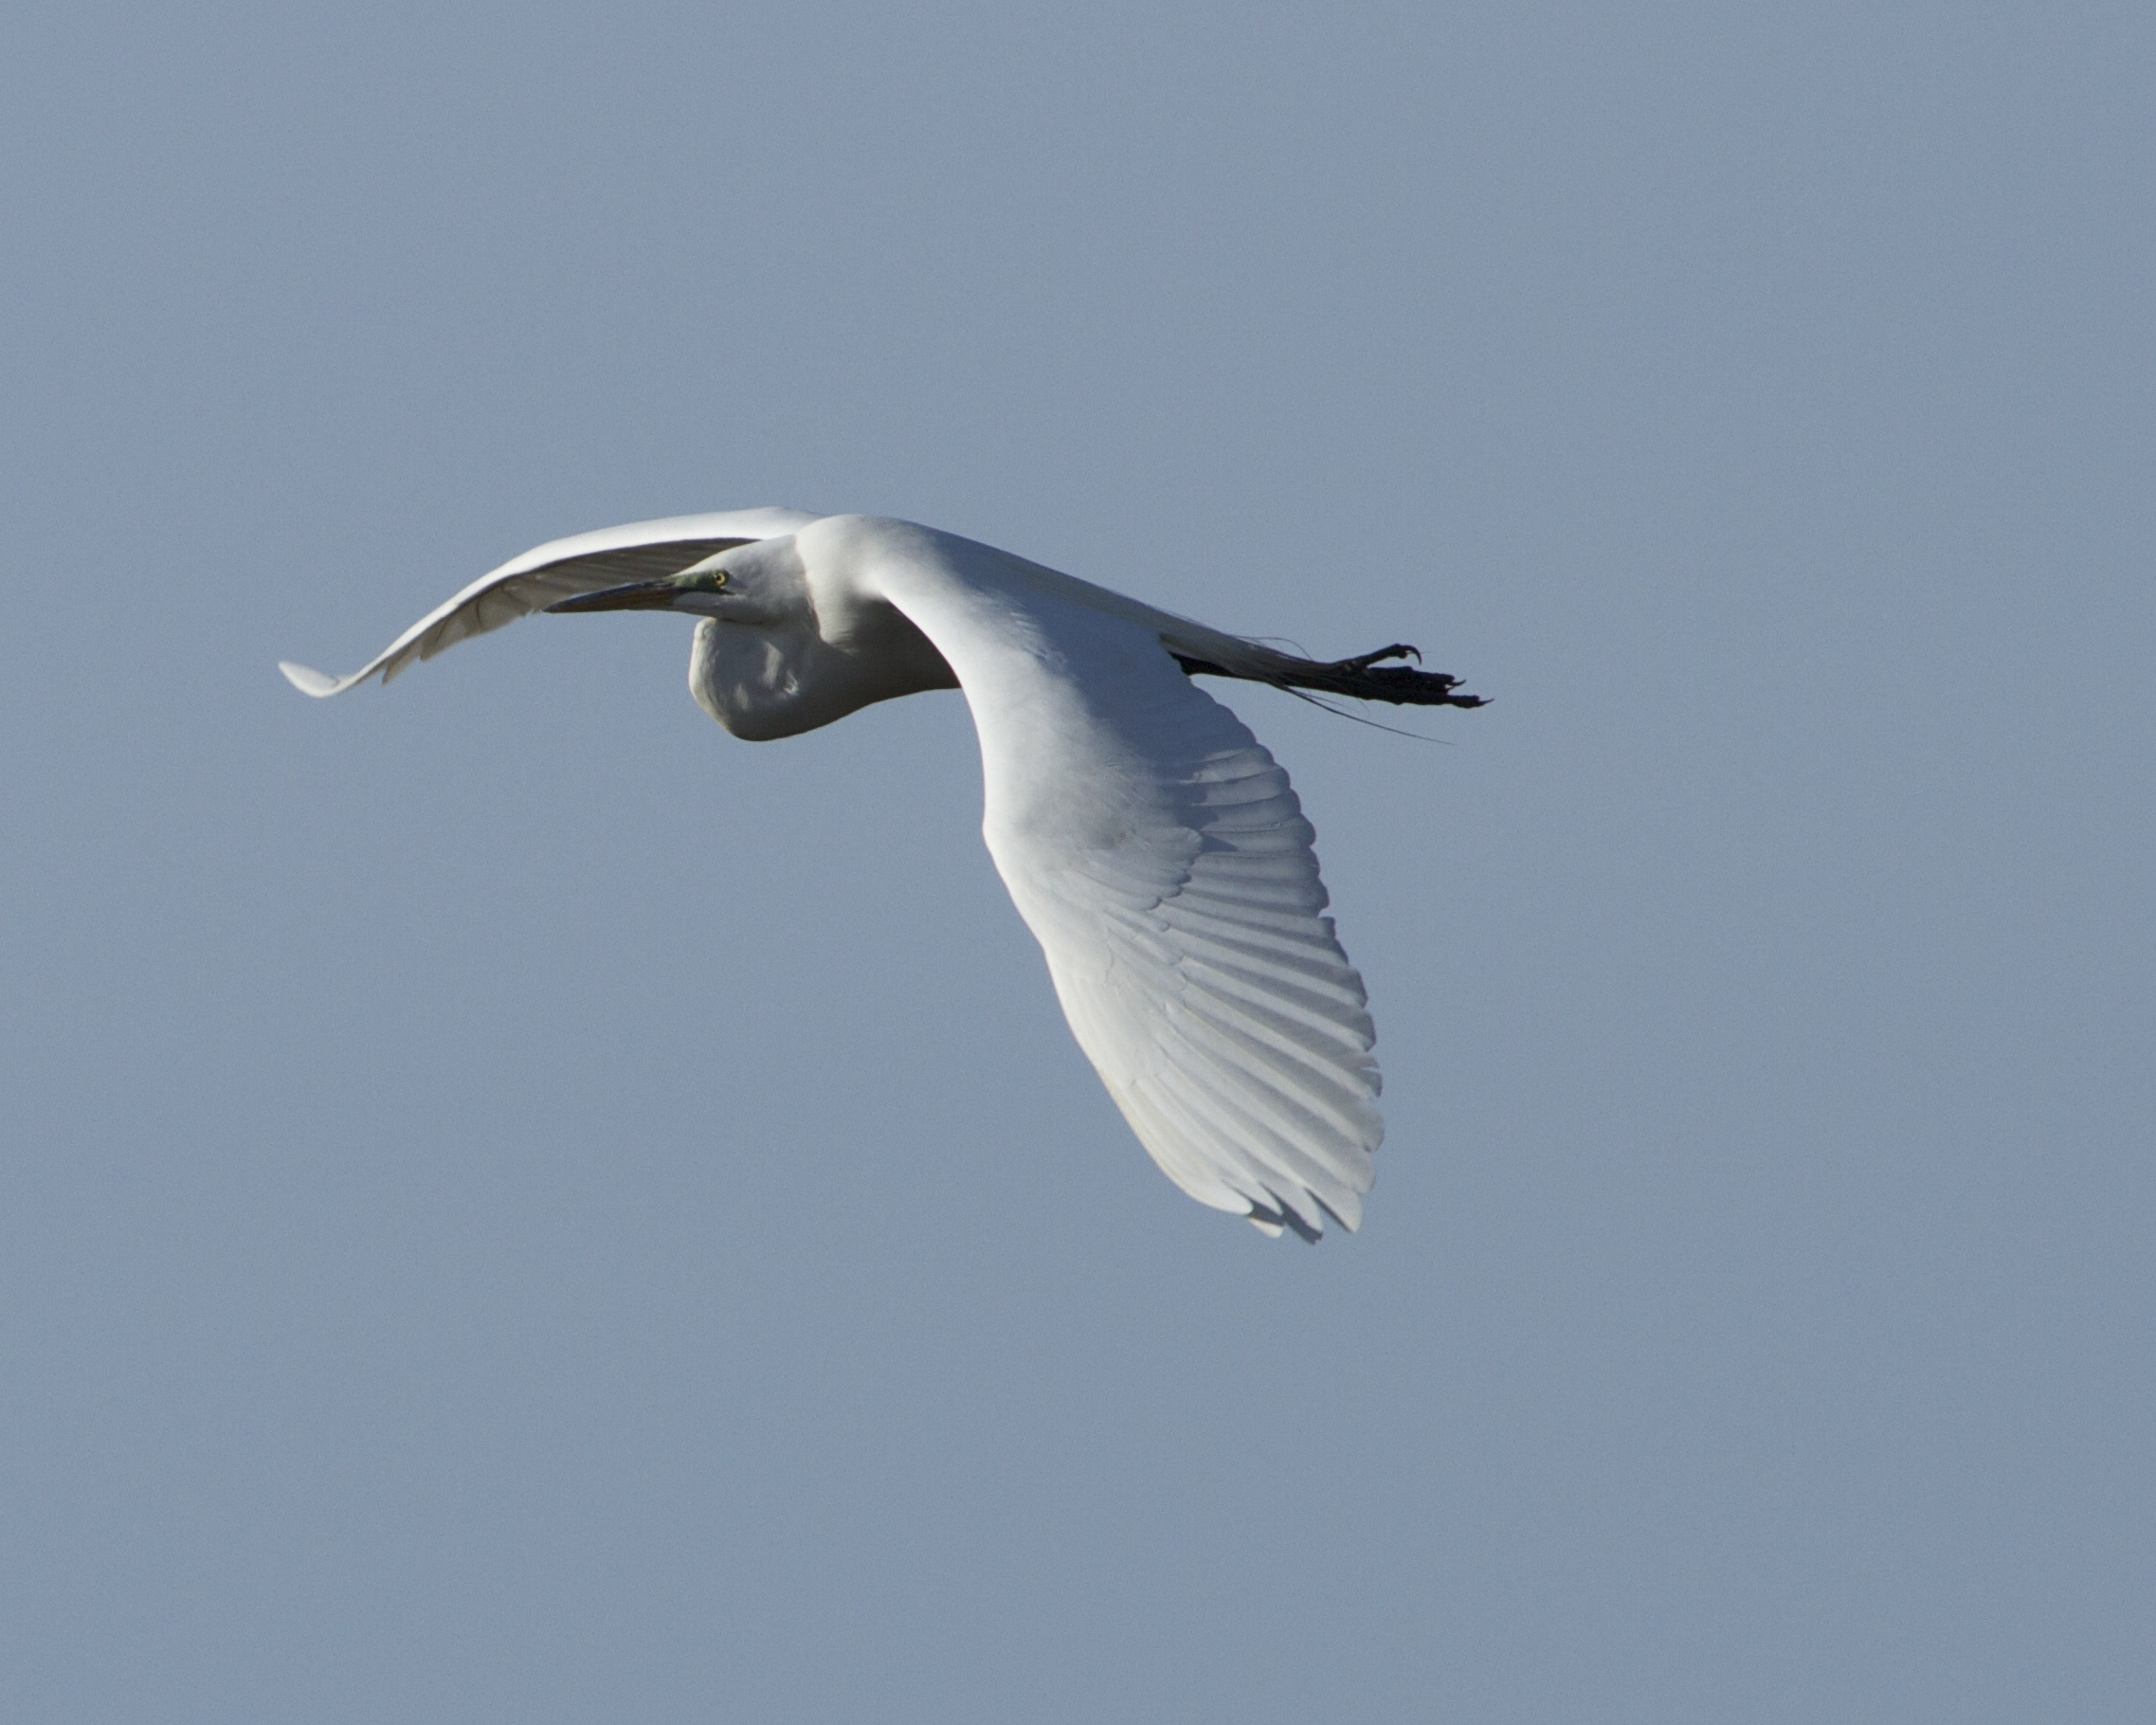 The Great Egret catches the morning sun on borad white wings.